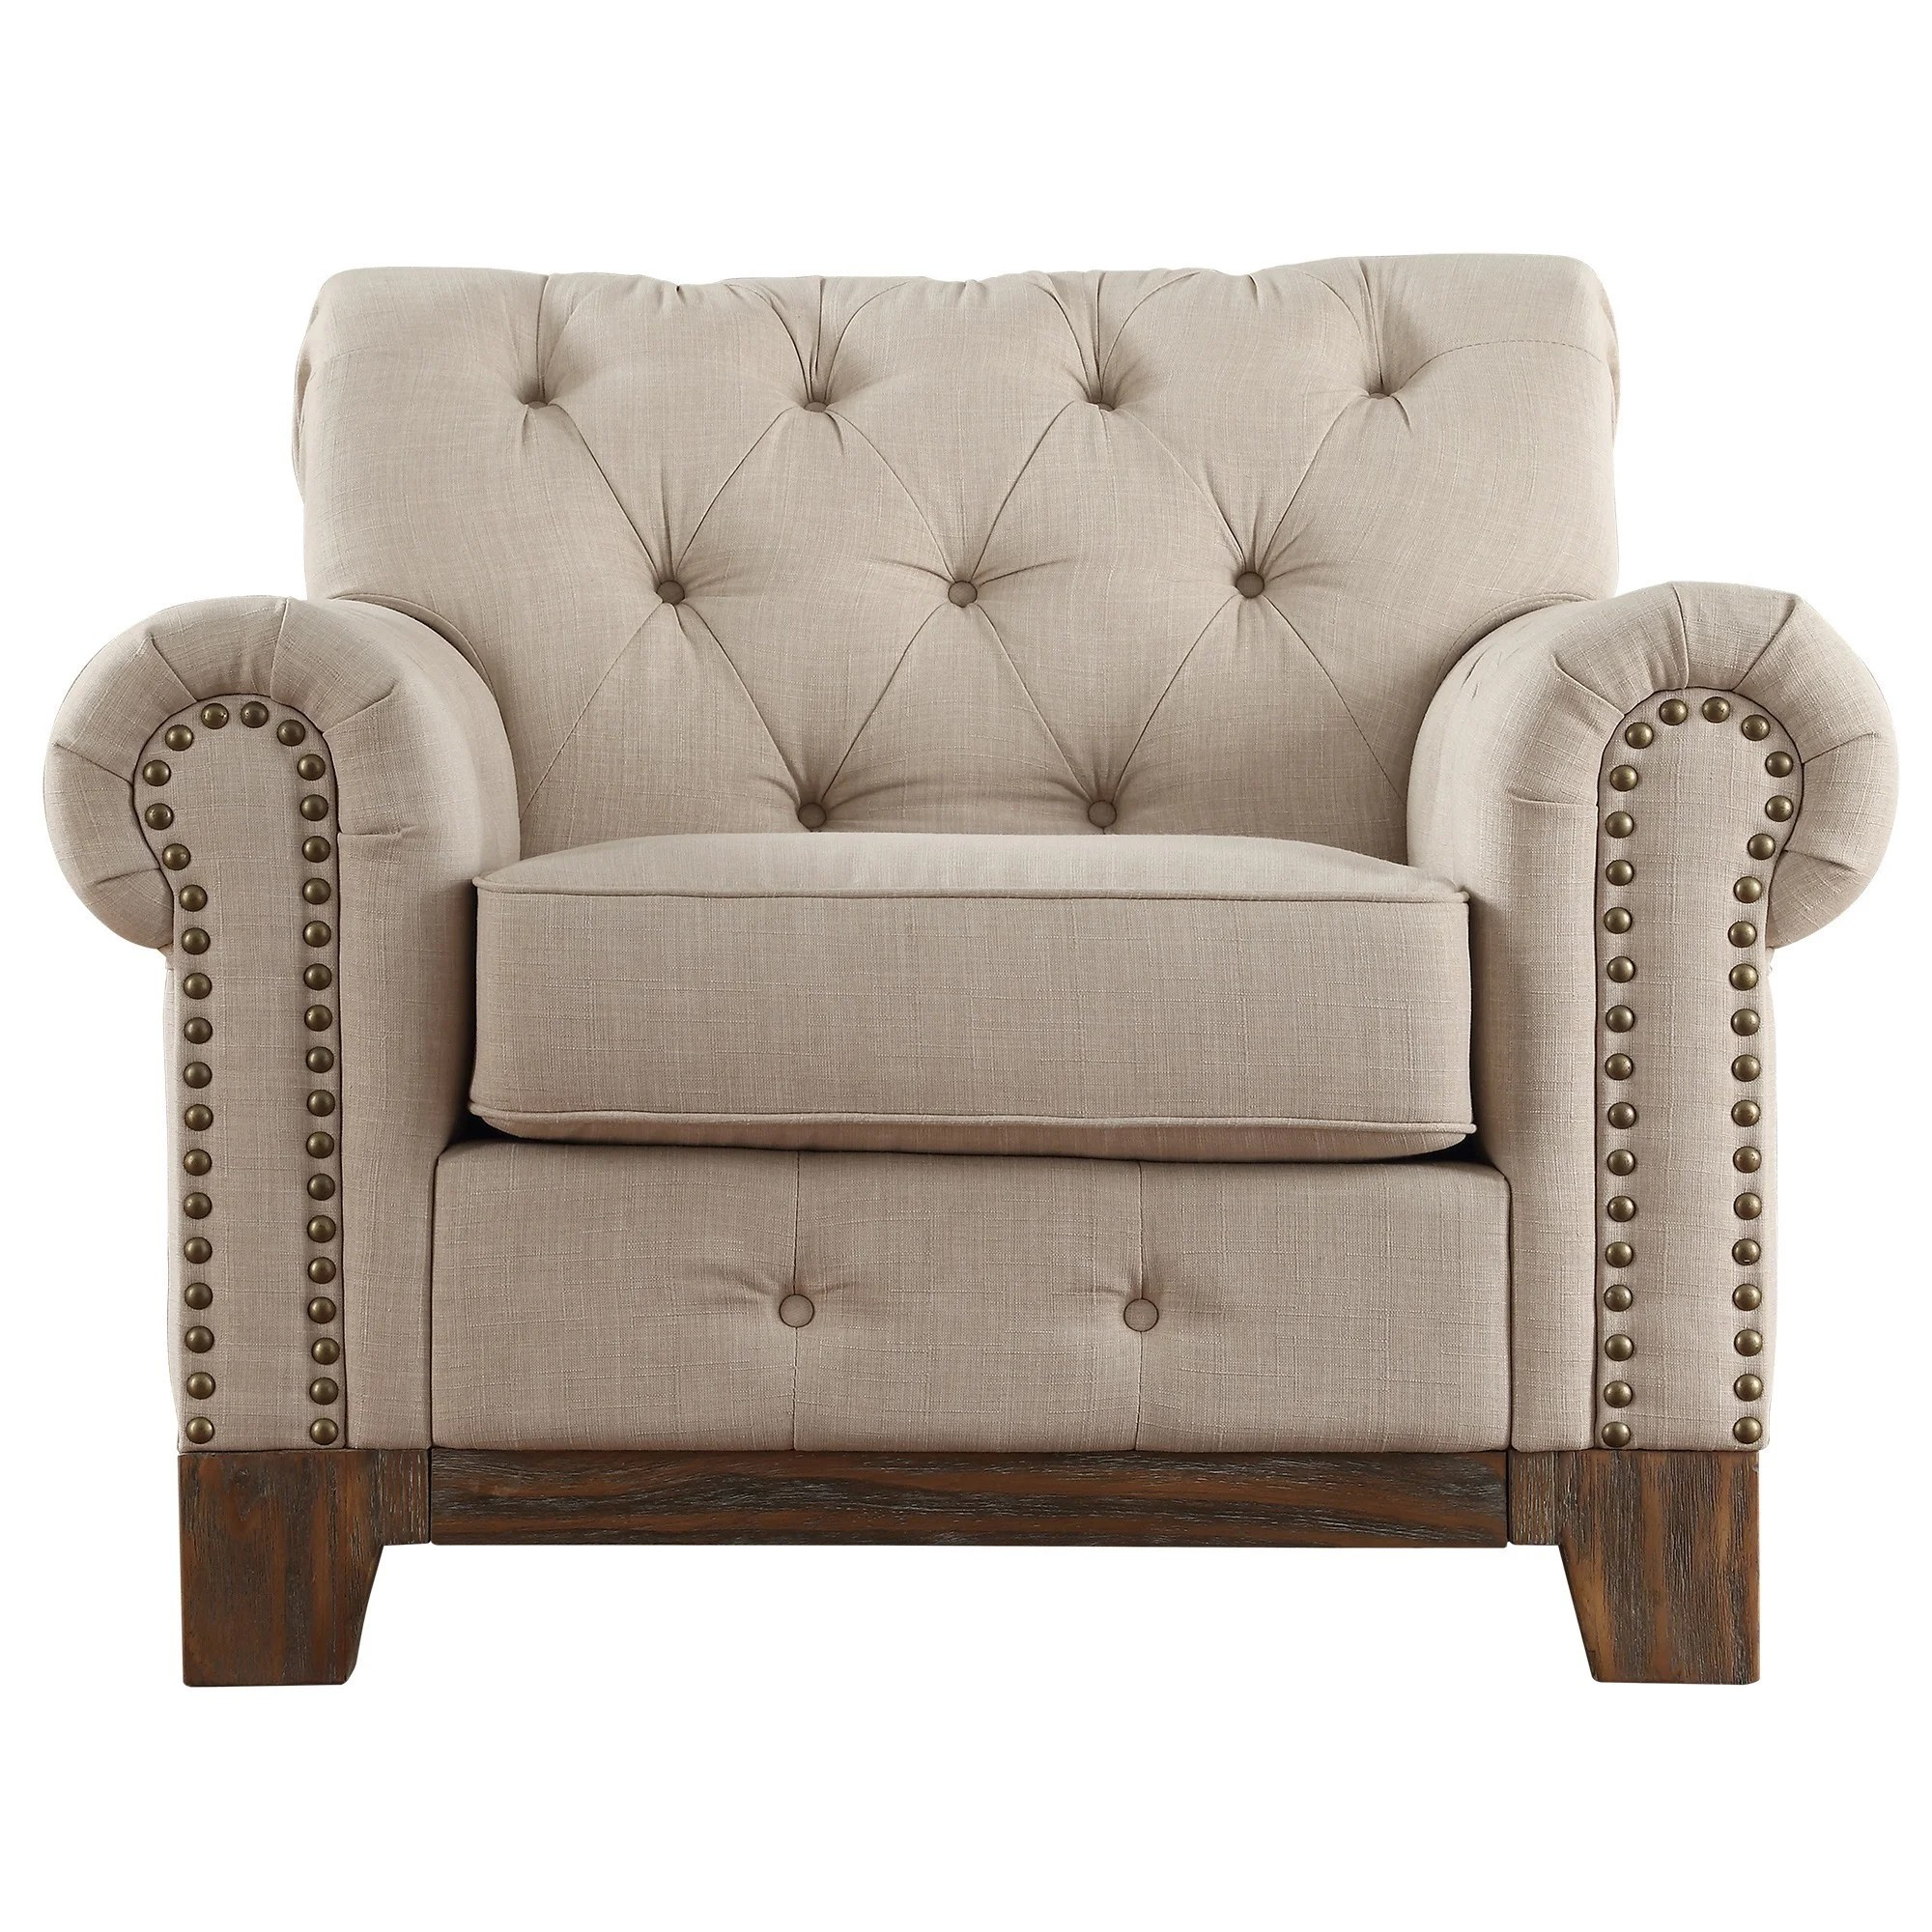 tribecca home knightsbridge beige linen tufted scroll arm chesterfield sofa ikea navy bed greenwich nailhead